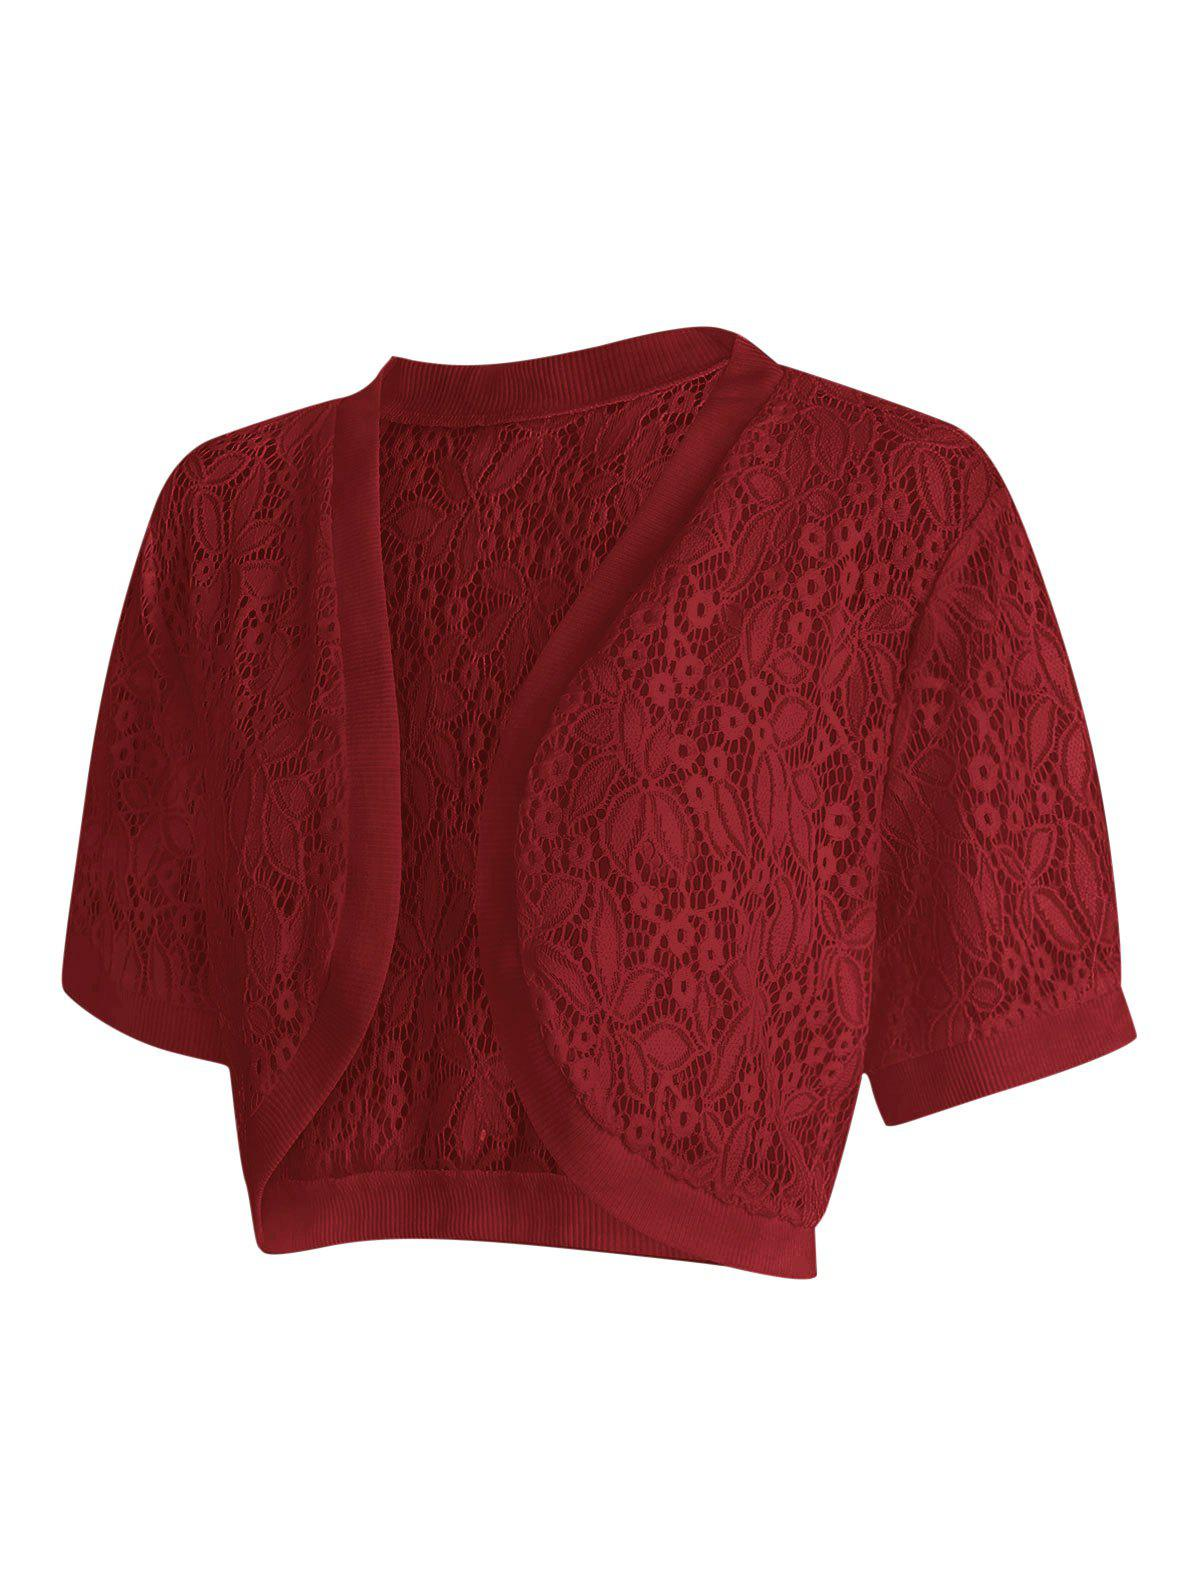 Plus Size Open Front Lace Panel Crop Top - RED WINE 2X